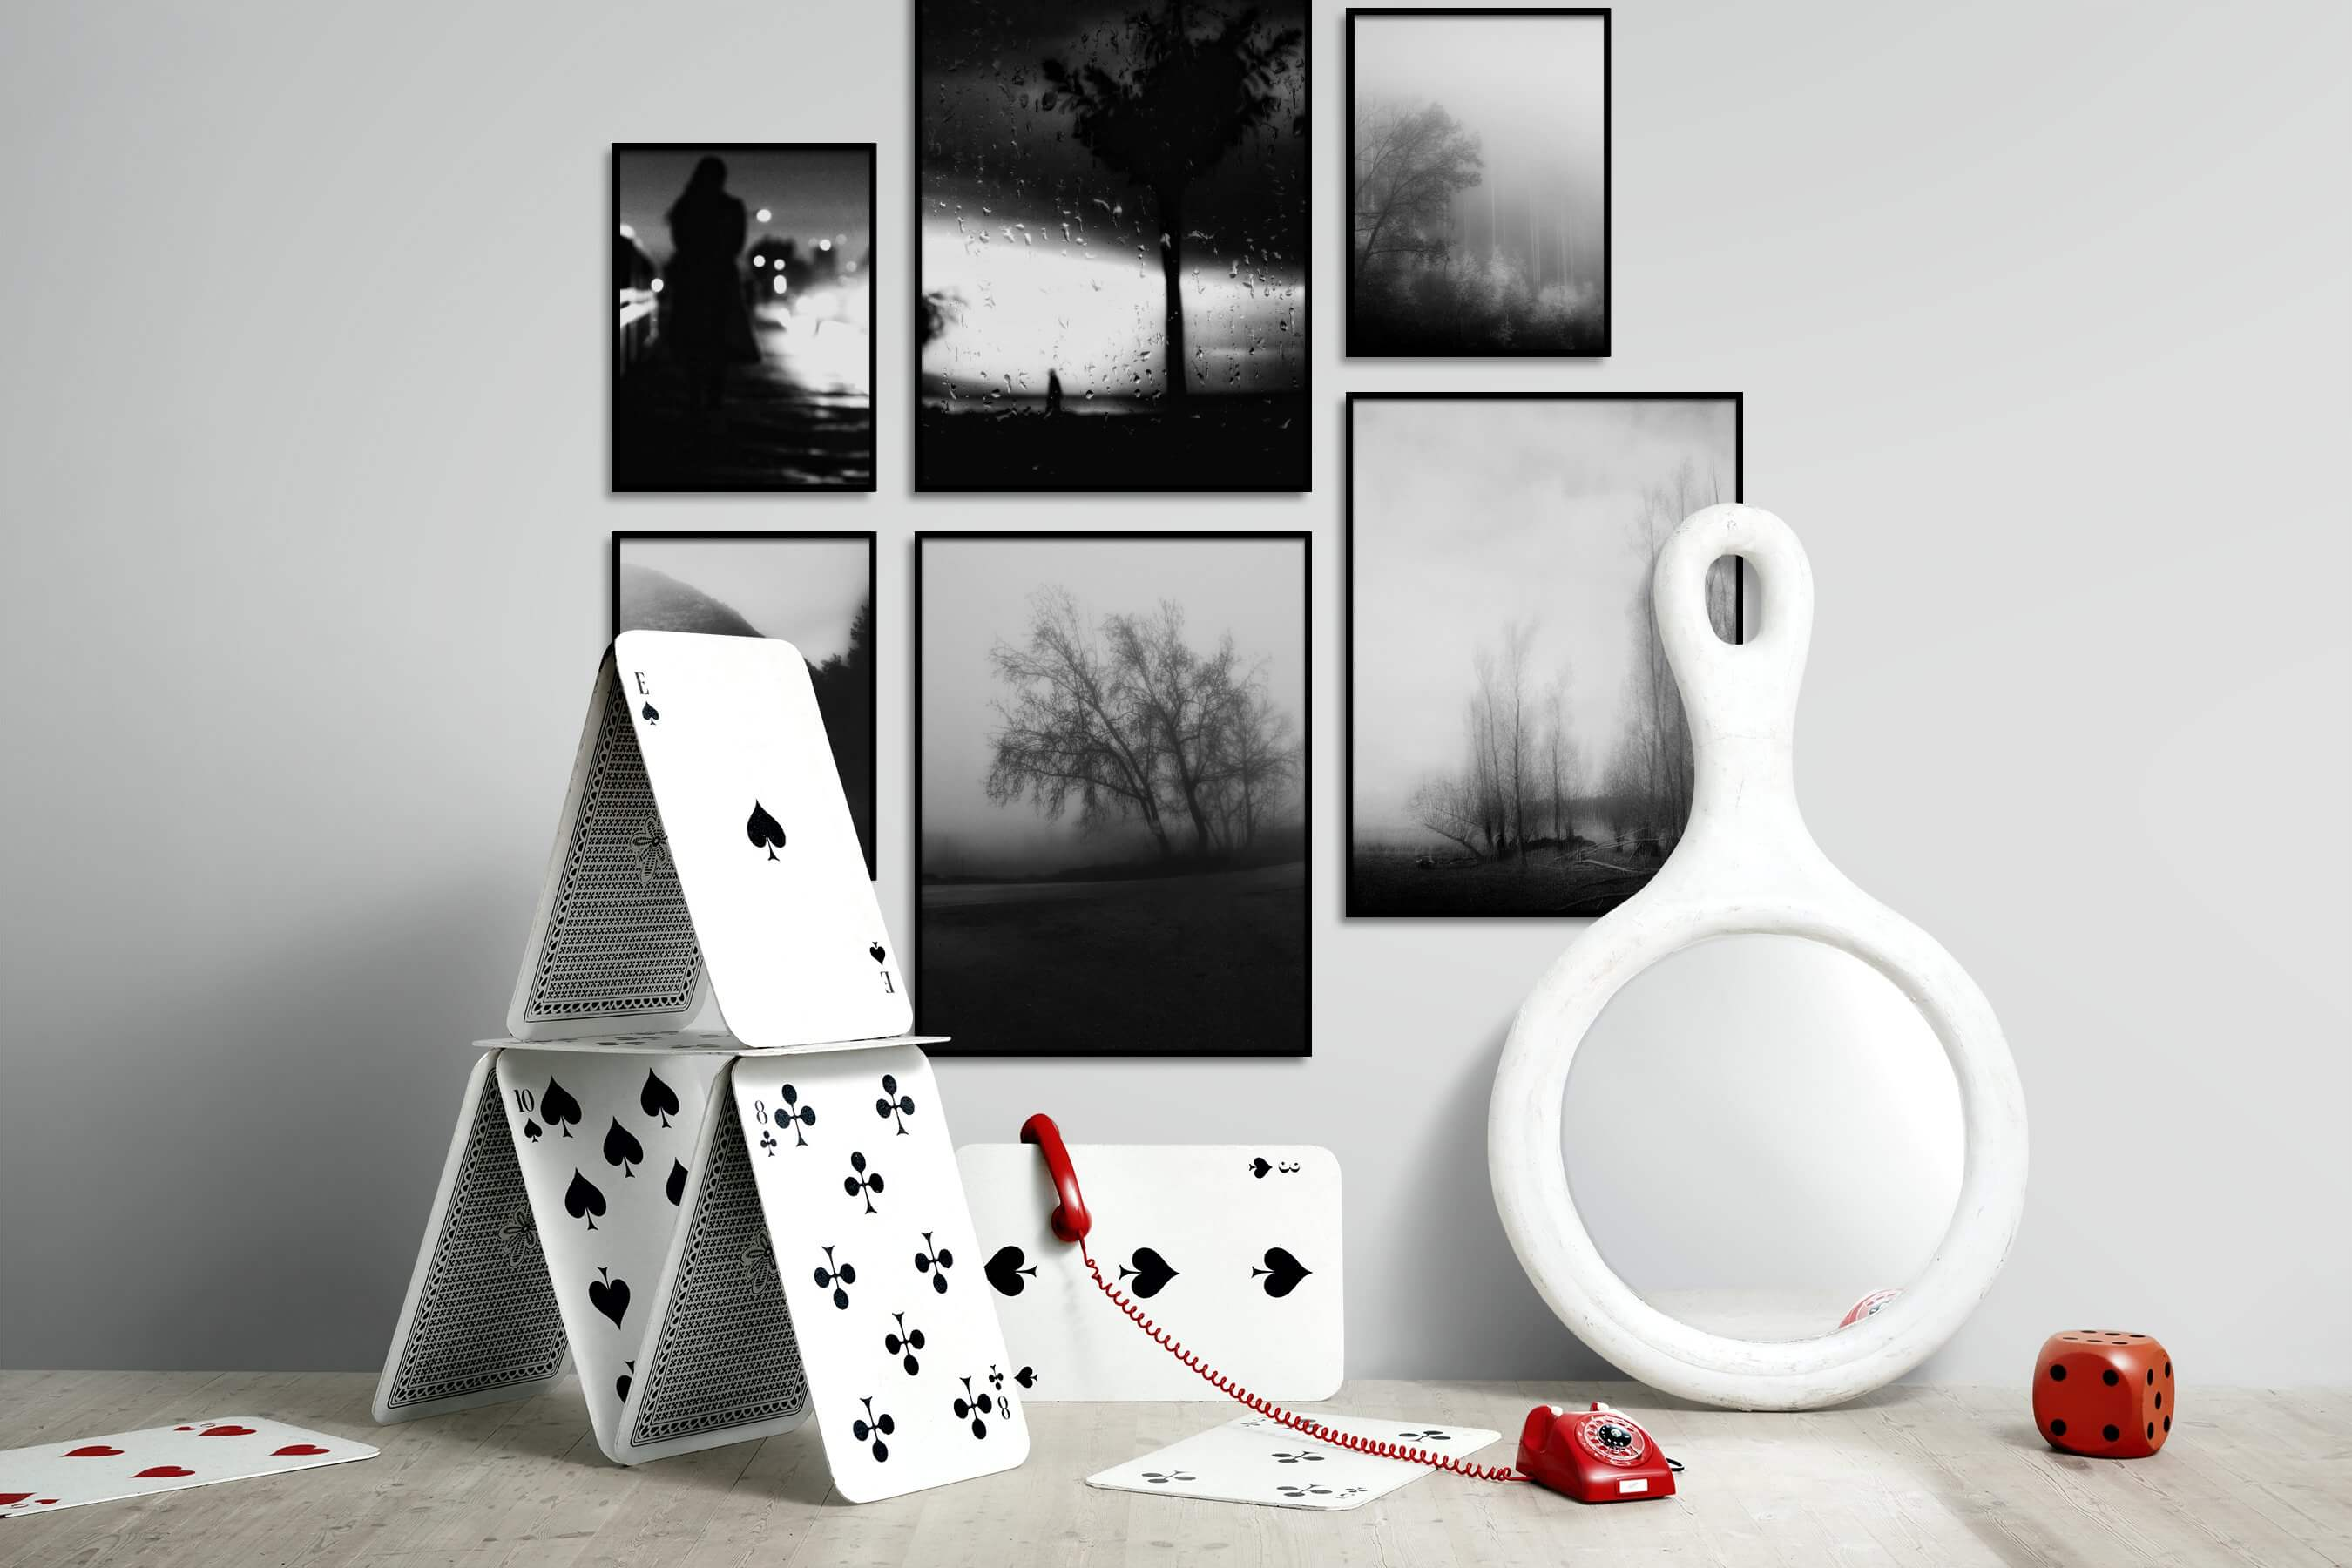 Gallery wall idea with six framed pictures arranged on a wall depicting Black & White, City Life, Country Life, and Nature